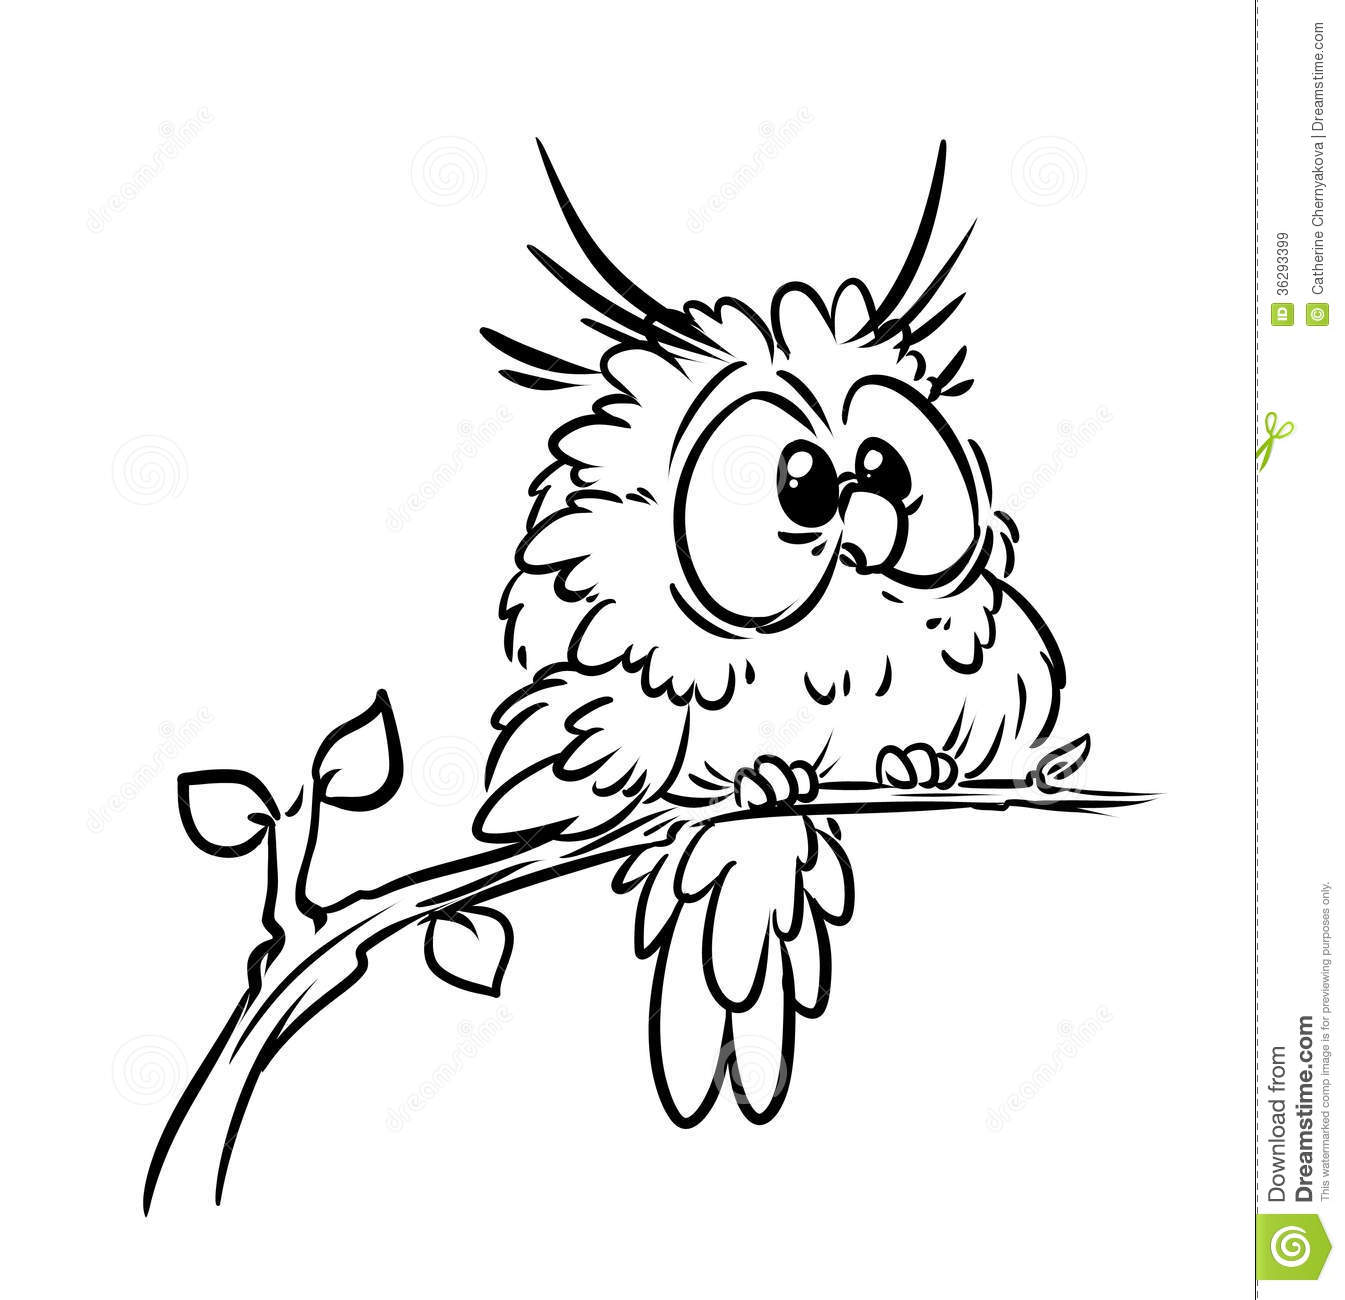 1345x1300 Color Clipart Owl Pencil And In Pin Picture Of An To Animal A